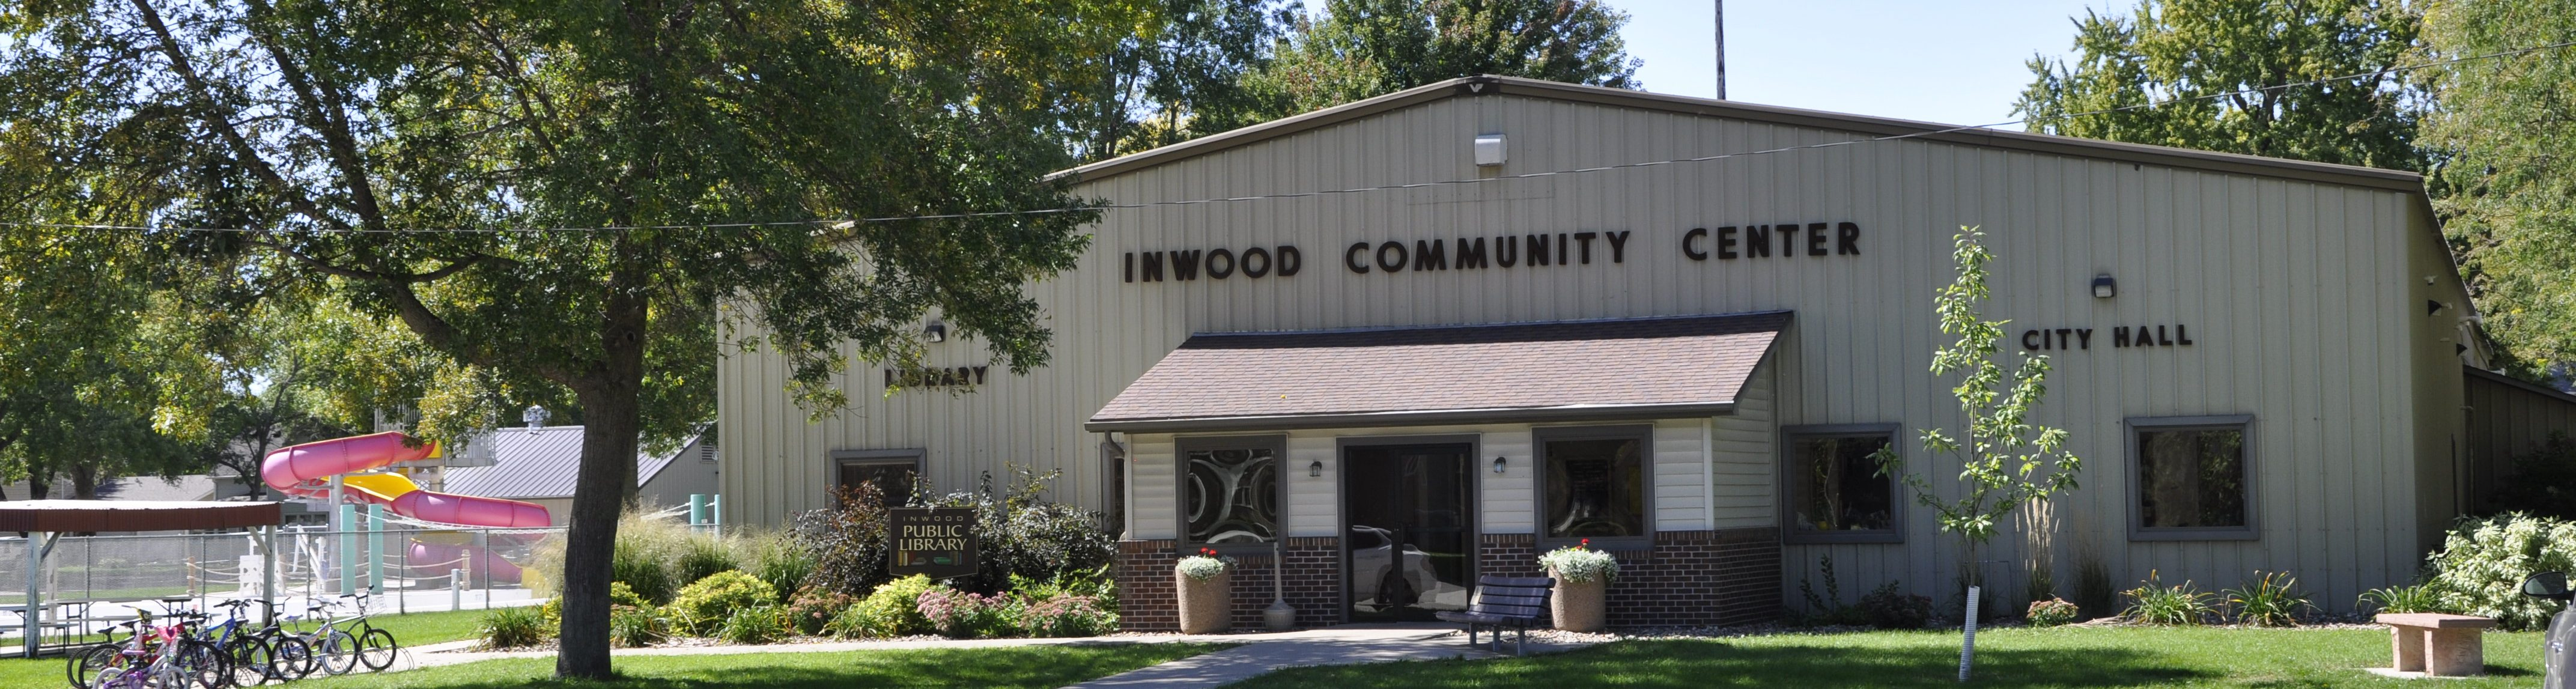 inwood community center